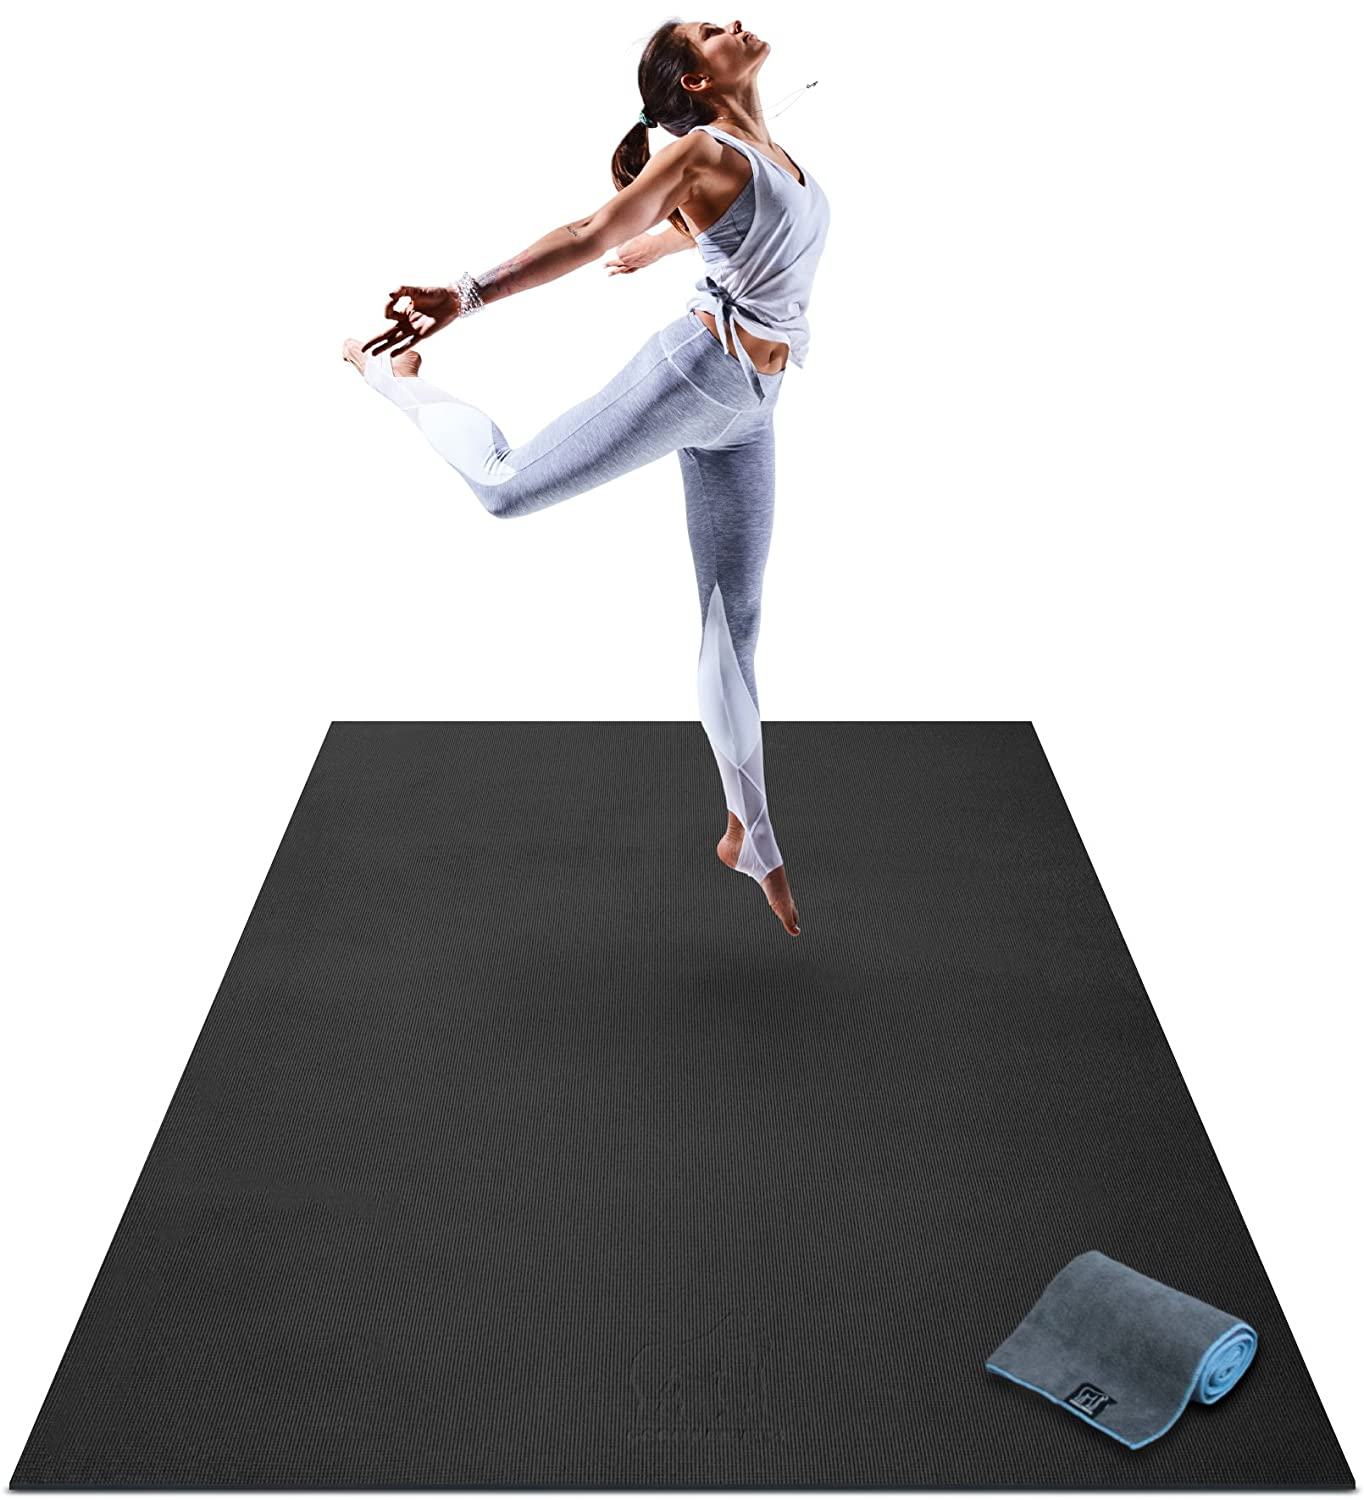 """Premium Large Yoga Mat - 6' x 4' x 8mm Extra Thick & Comfortable, Non-Toxic, Non-Slip, Barefoot Exercise Mat - Yoga, Stretching, Cardio Workout Mats for Home Gym Flooring (72"""" Long x 48"""" Wide)"""